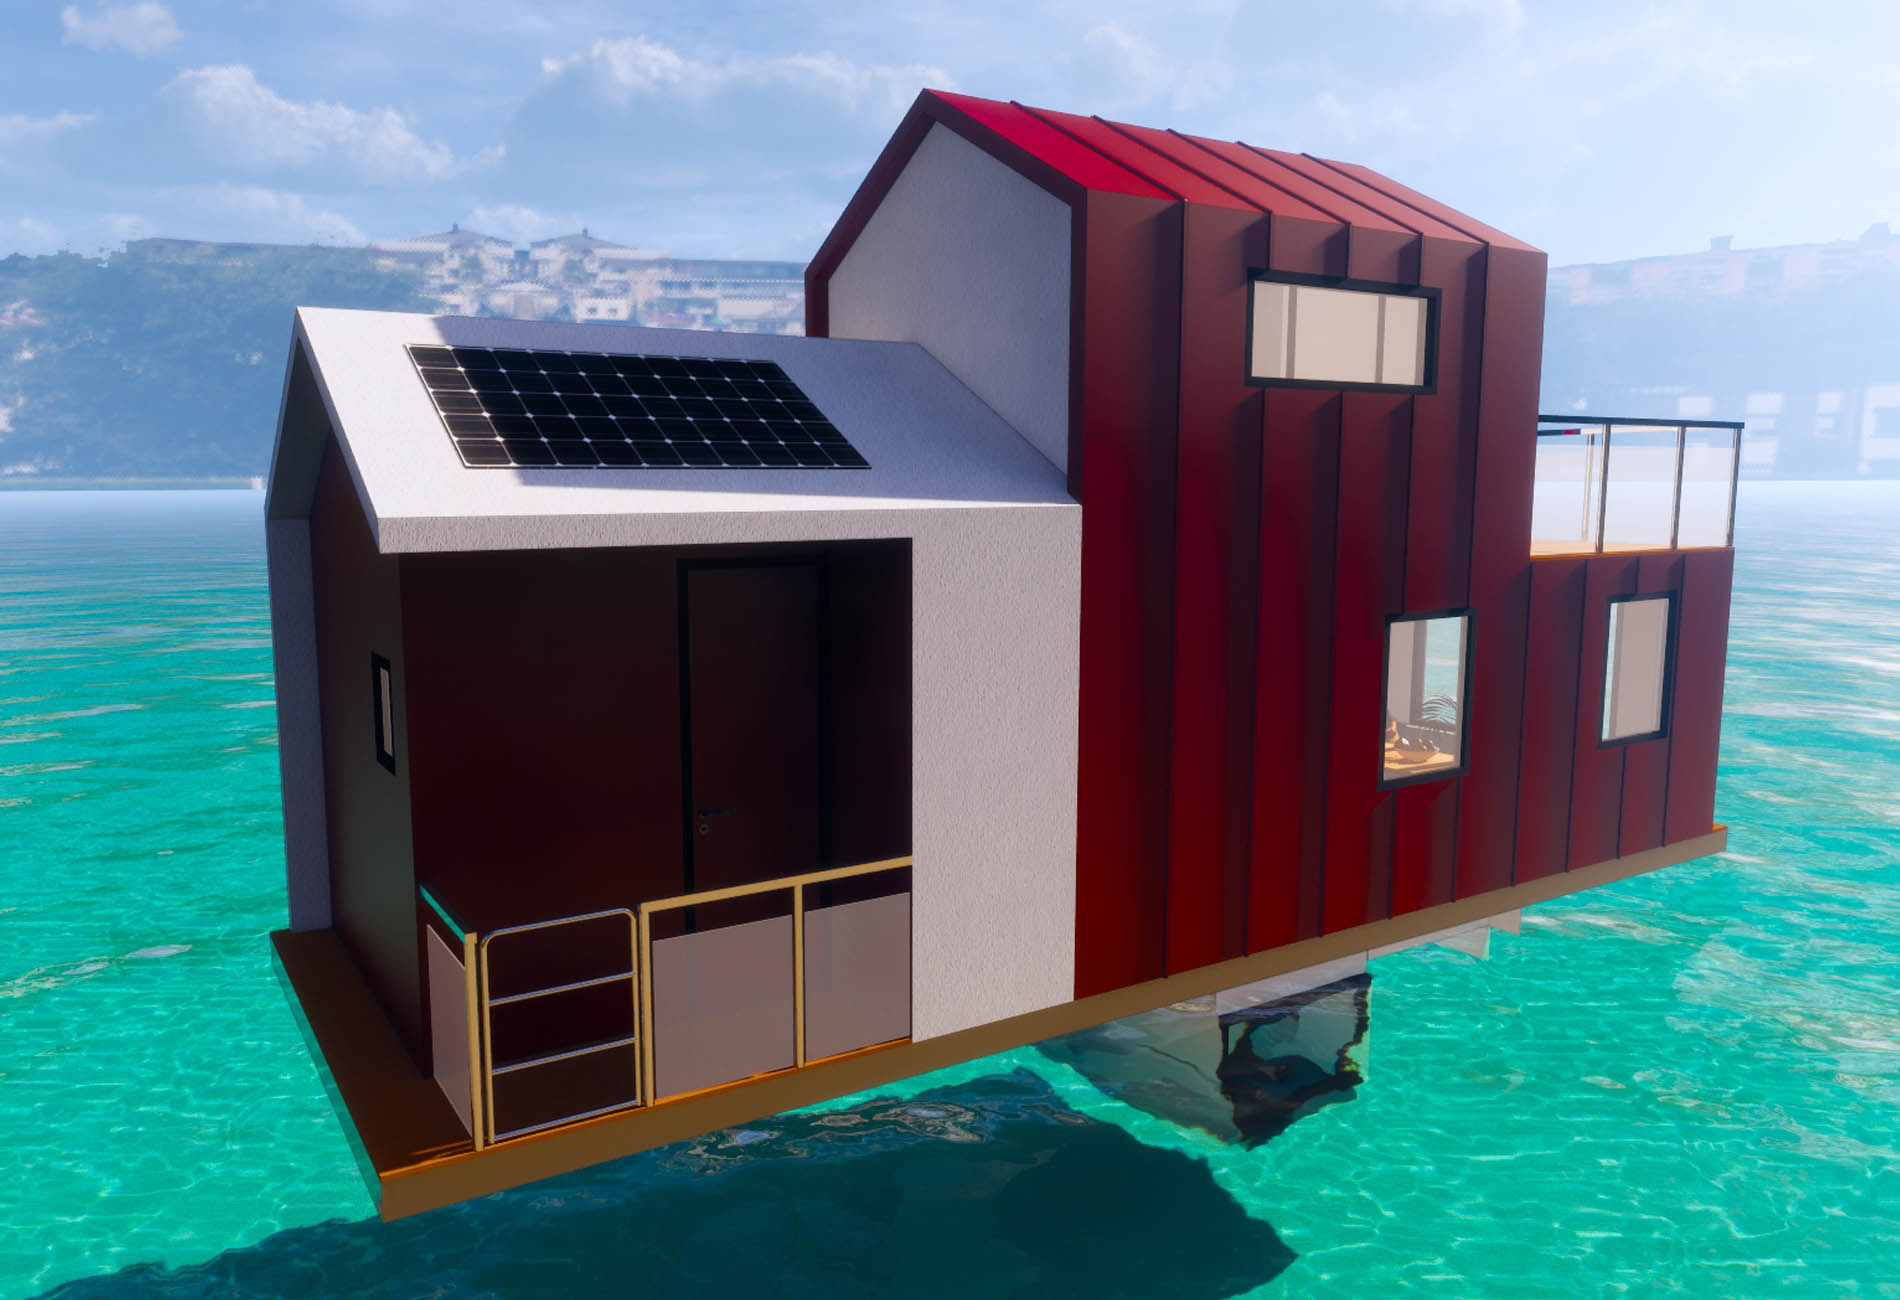 Junhome-Floating House-Naval Architecture-Vincent-Lebailly-Boat-design-5